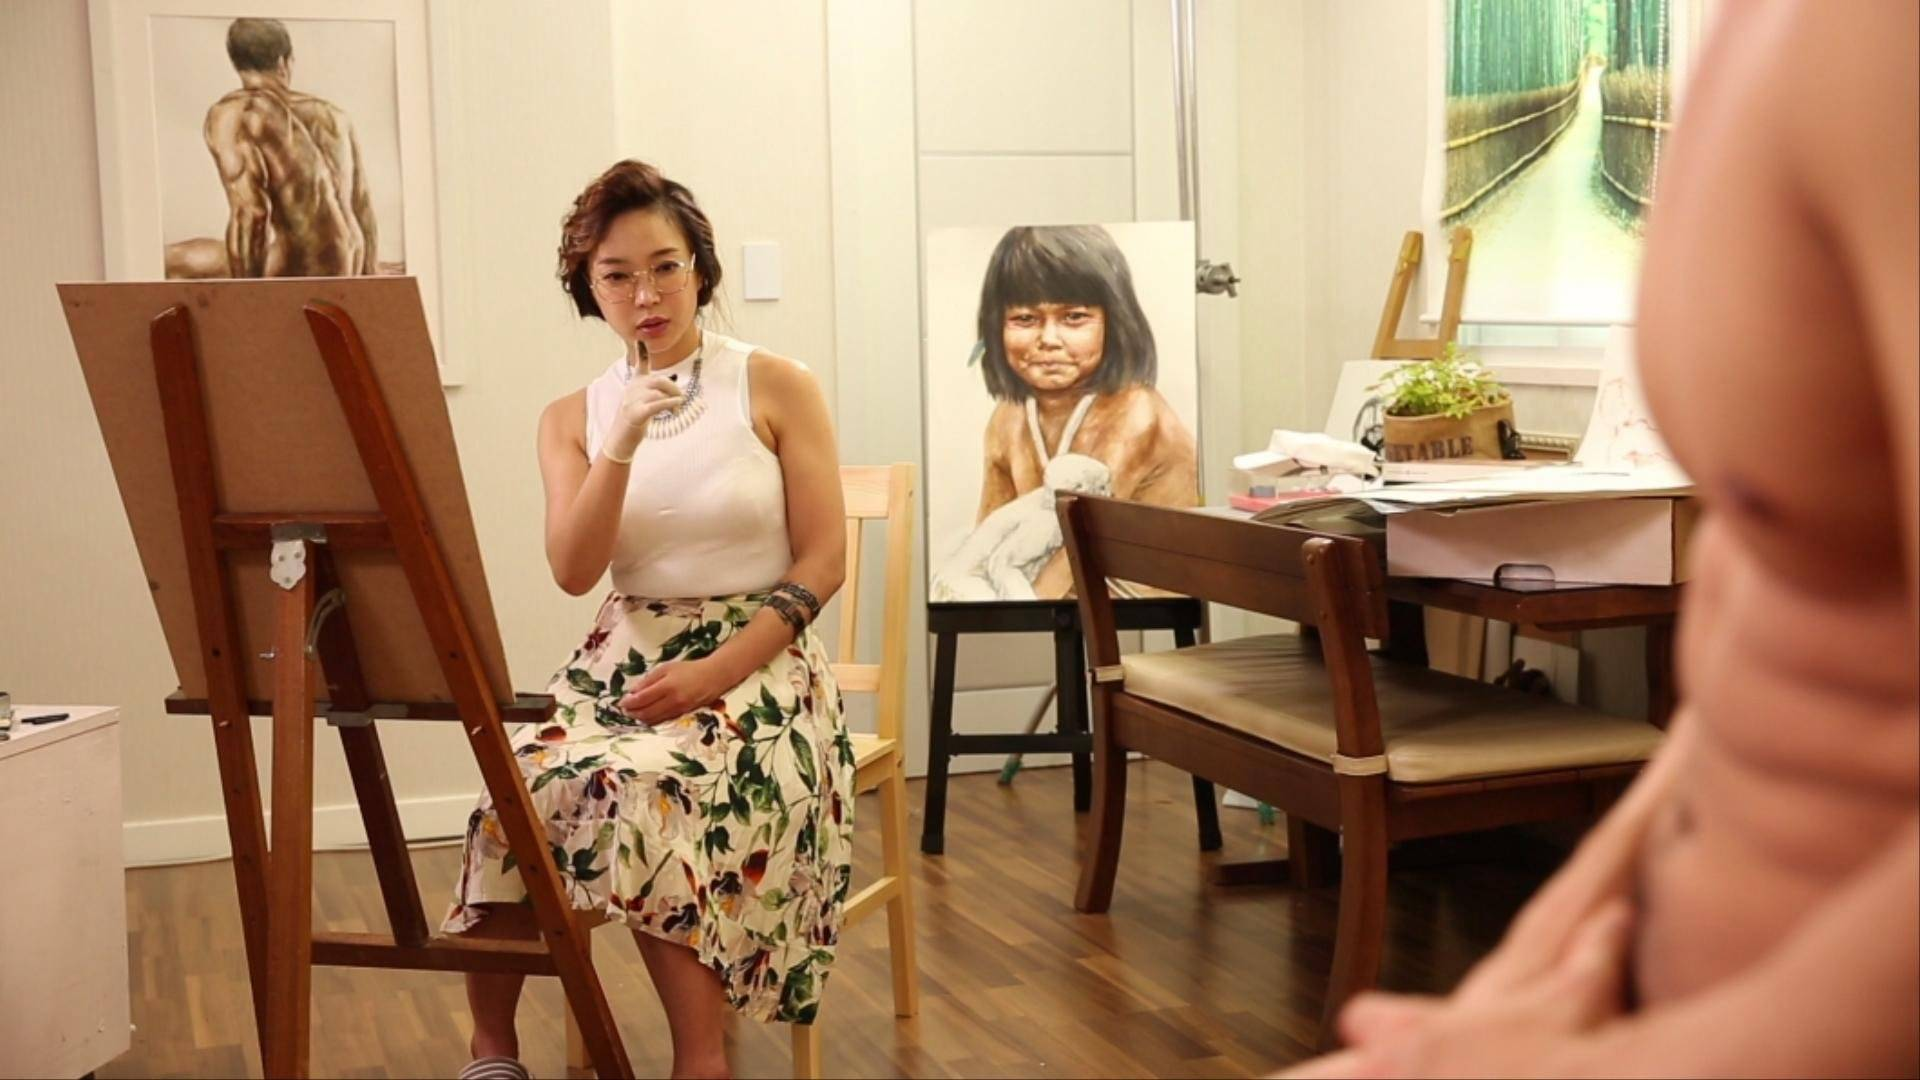 The Day of Swapping (스와핑 하던 날) - Movie - Picture Gallery @ HanCinema